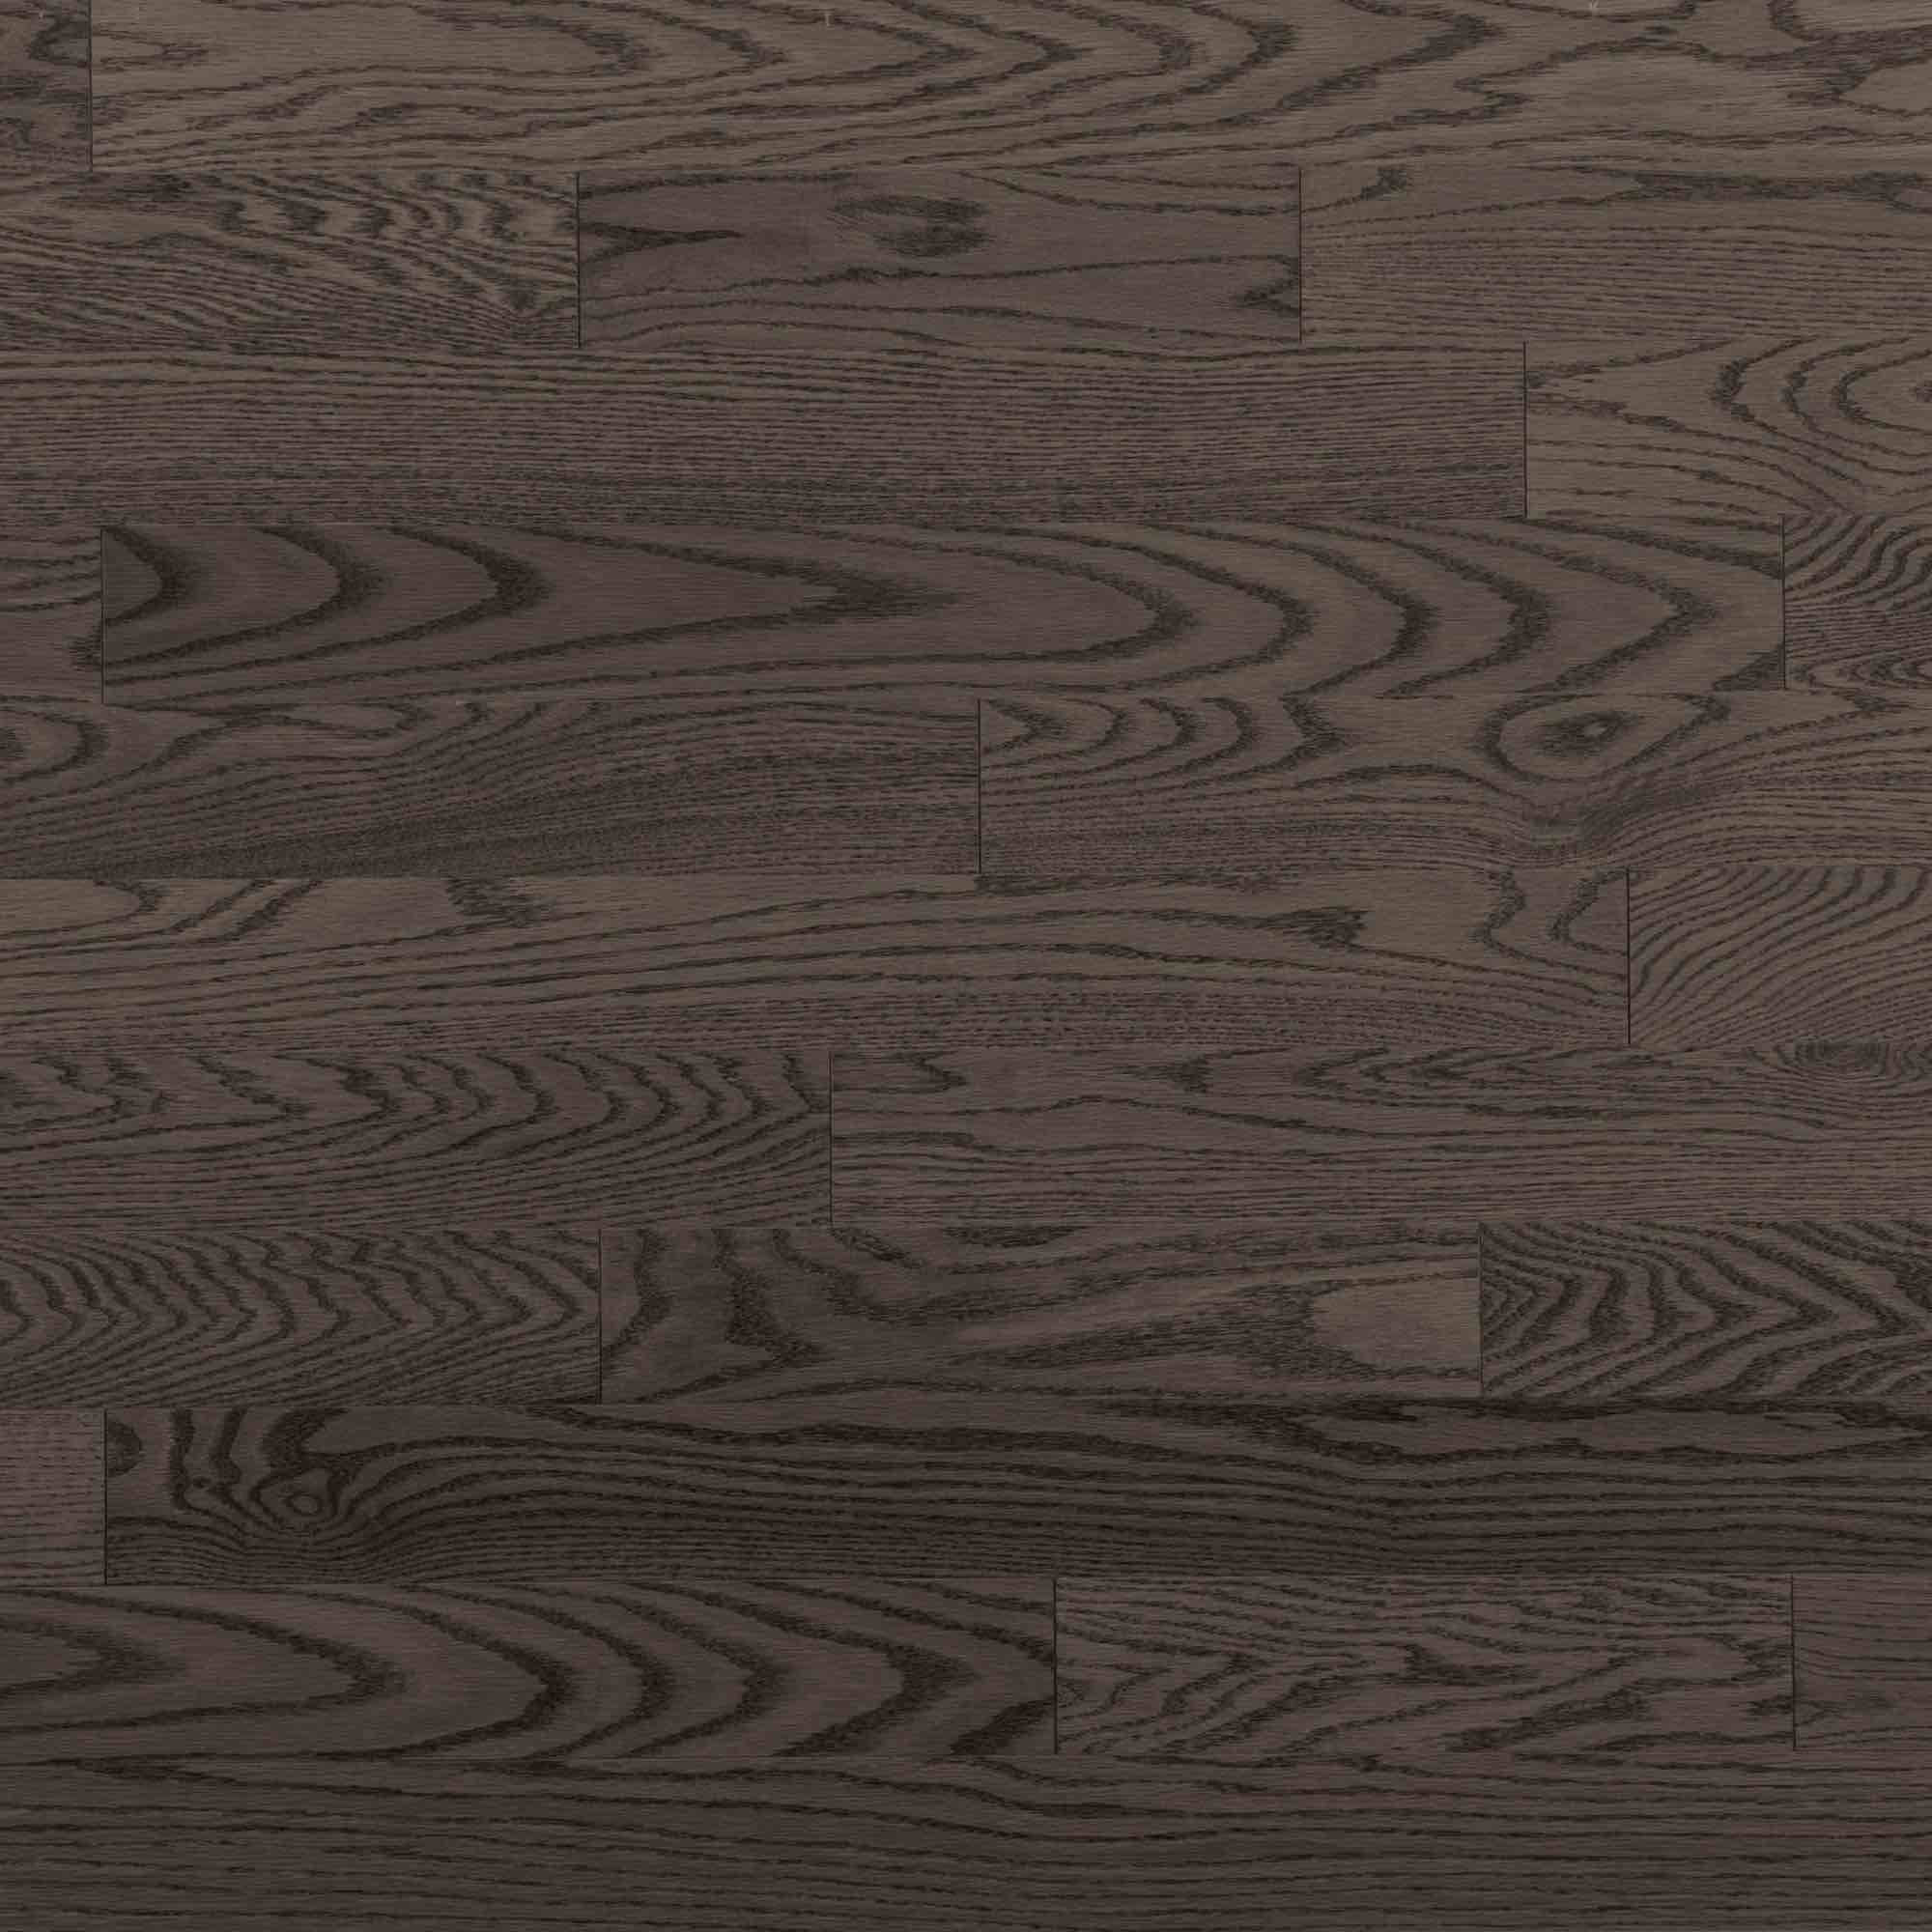 how hard to install hardwood floors of hardwood westfloors west vancouver hardwood flooring carpet with featured hardwoods red oak charcoal